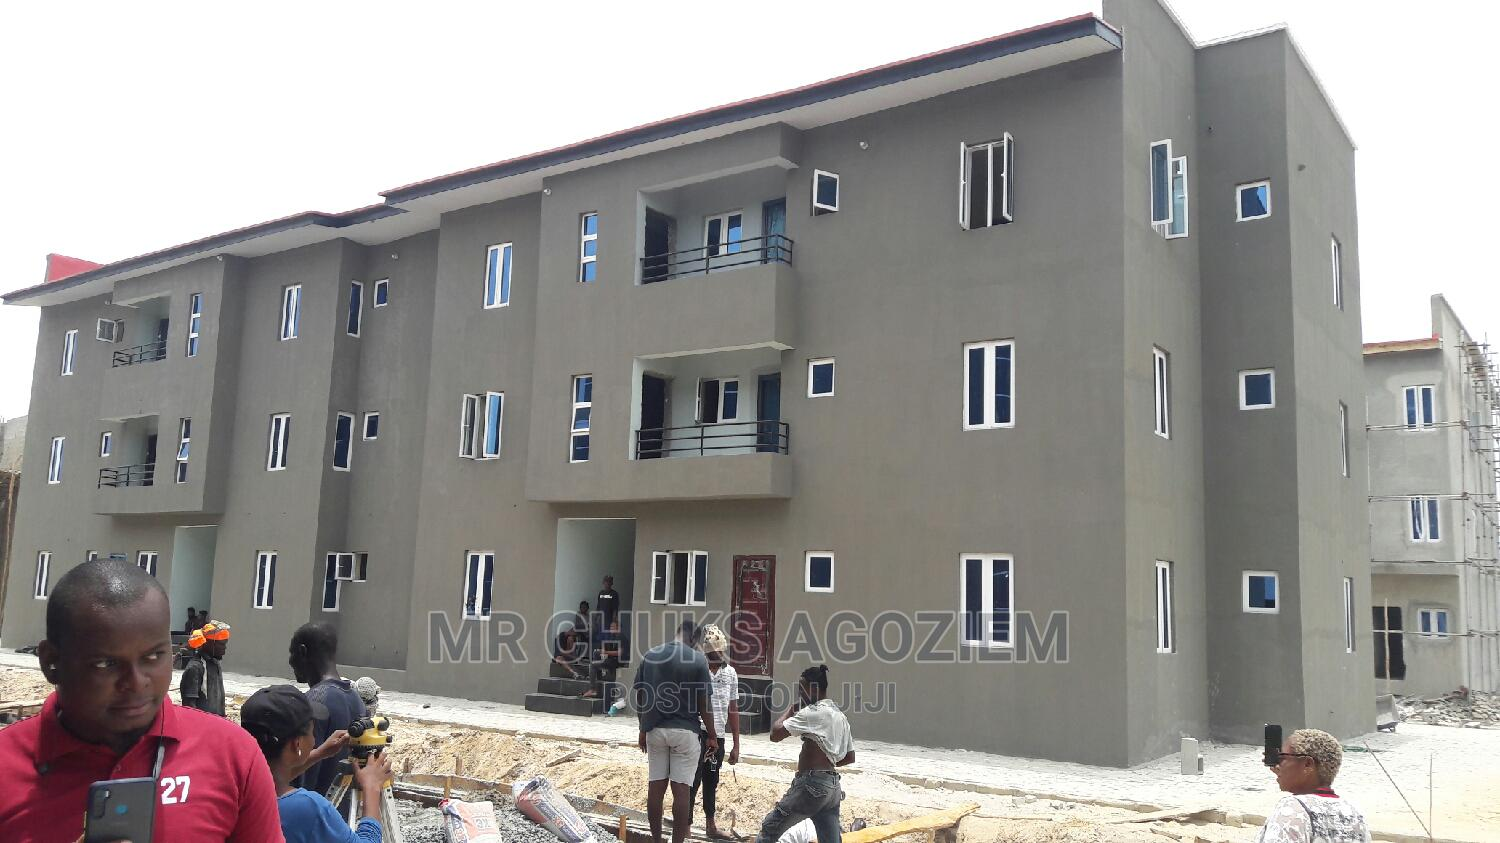 4 Bedrooms of Flats and Terraces for Sale